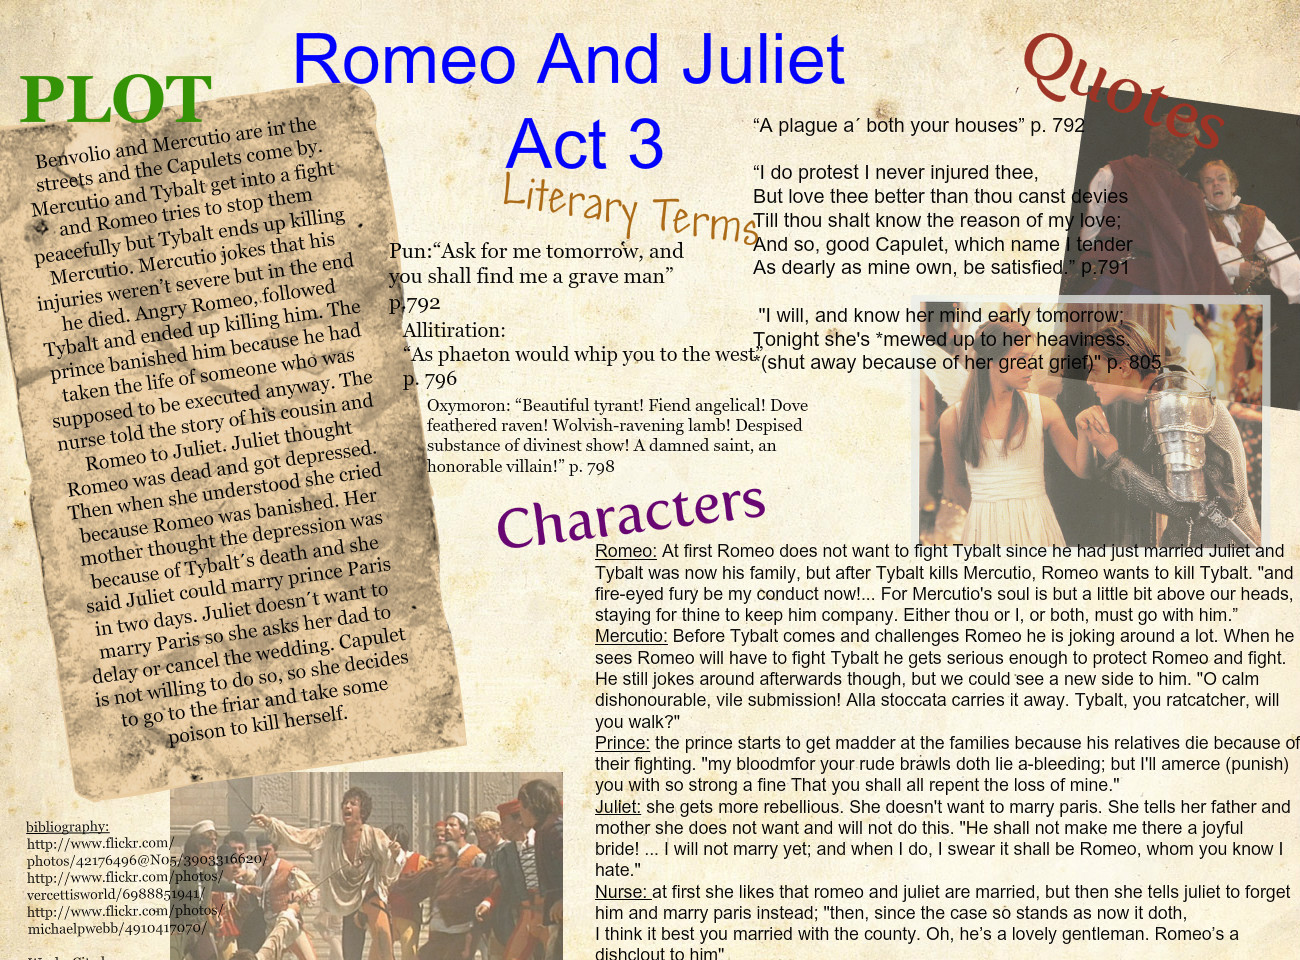 romeo and juliet essay love is stronger than hate The essay on love is stronger than hate to say which is the stronger emotion – love or hate personally, i believe that love is stronger than hate, but it is really a.